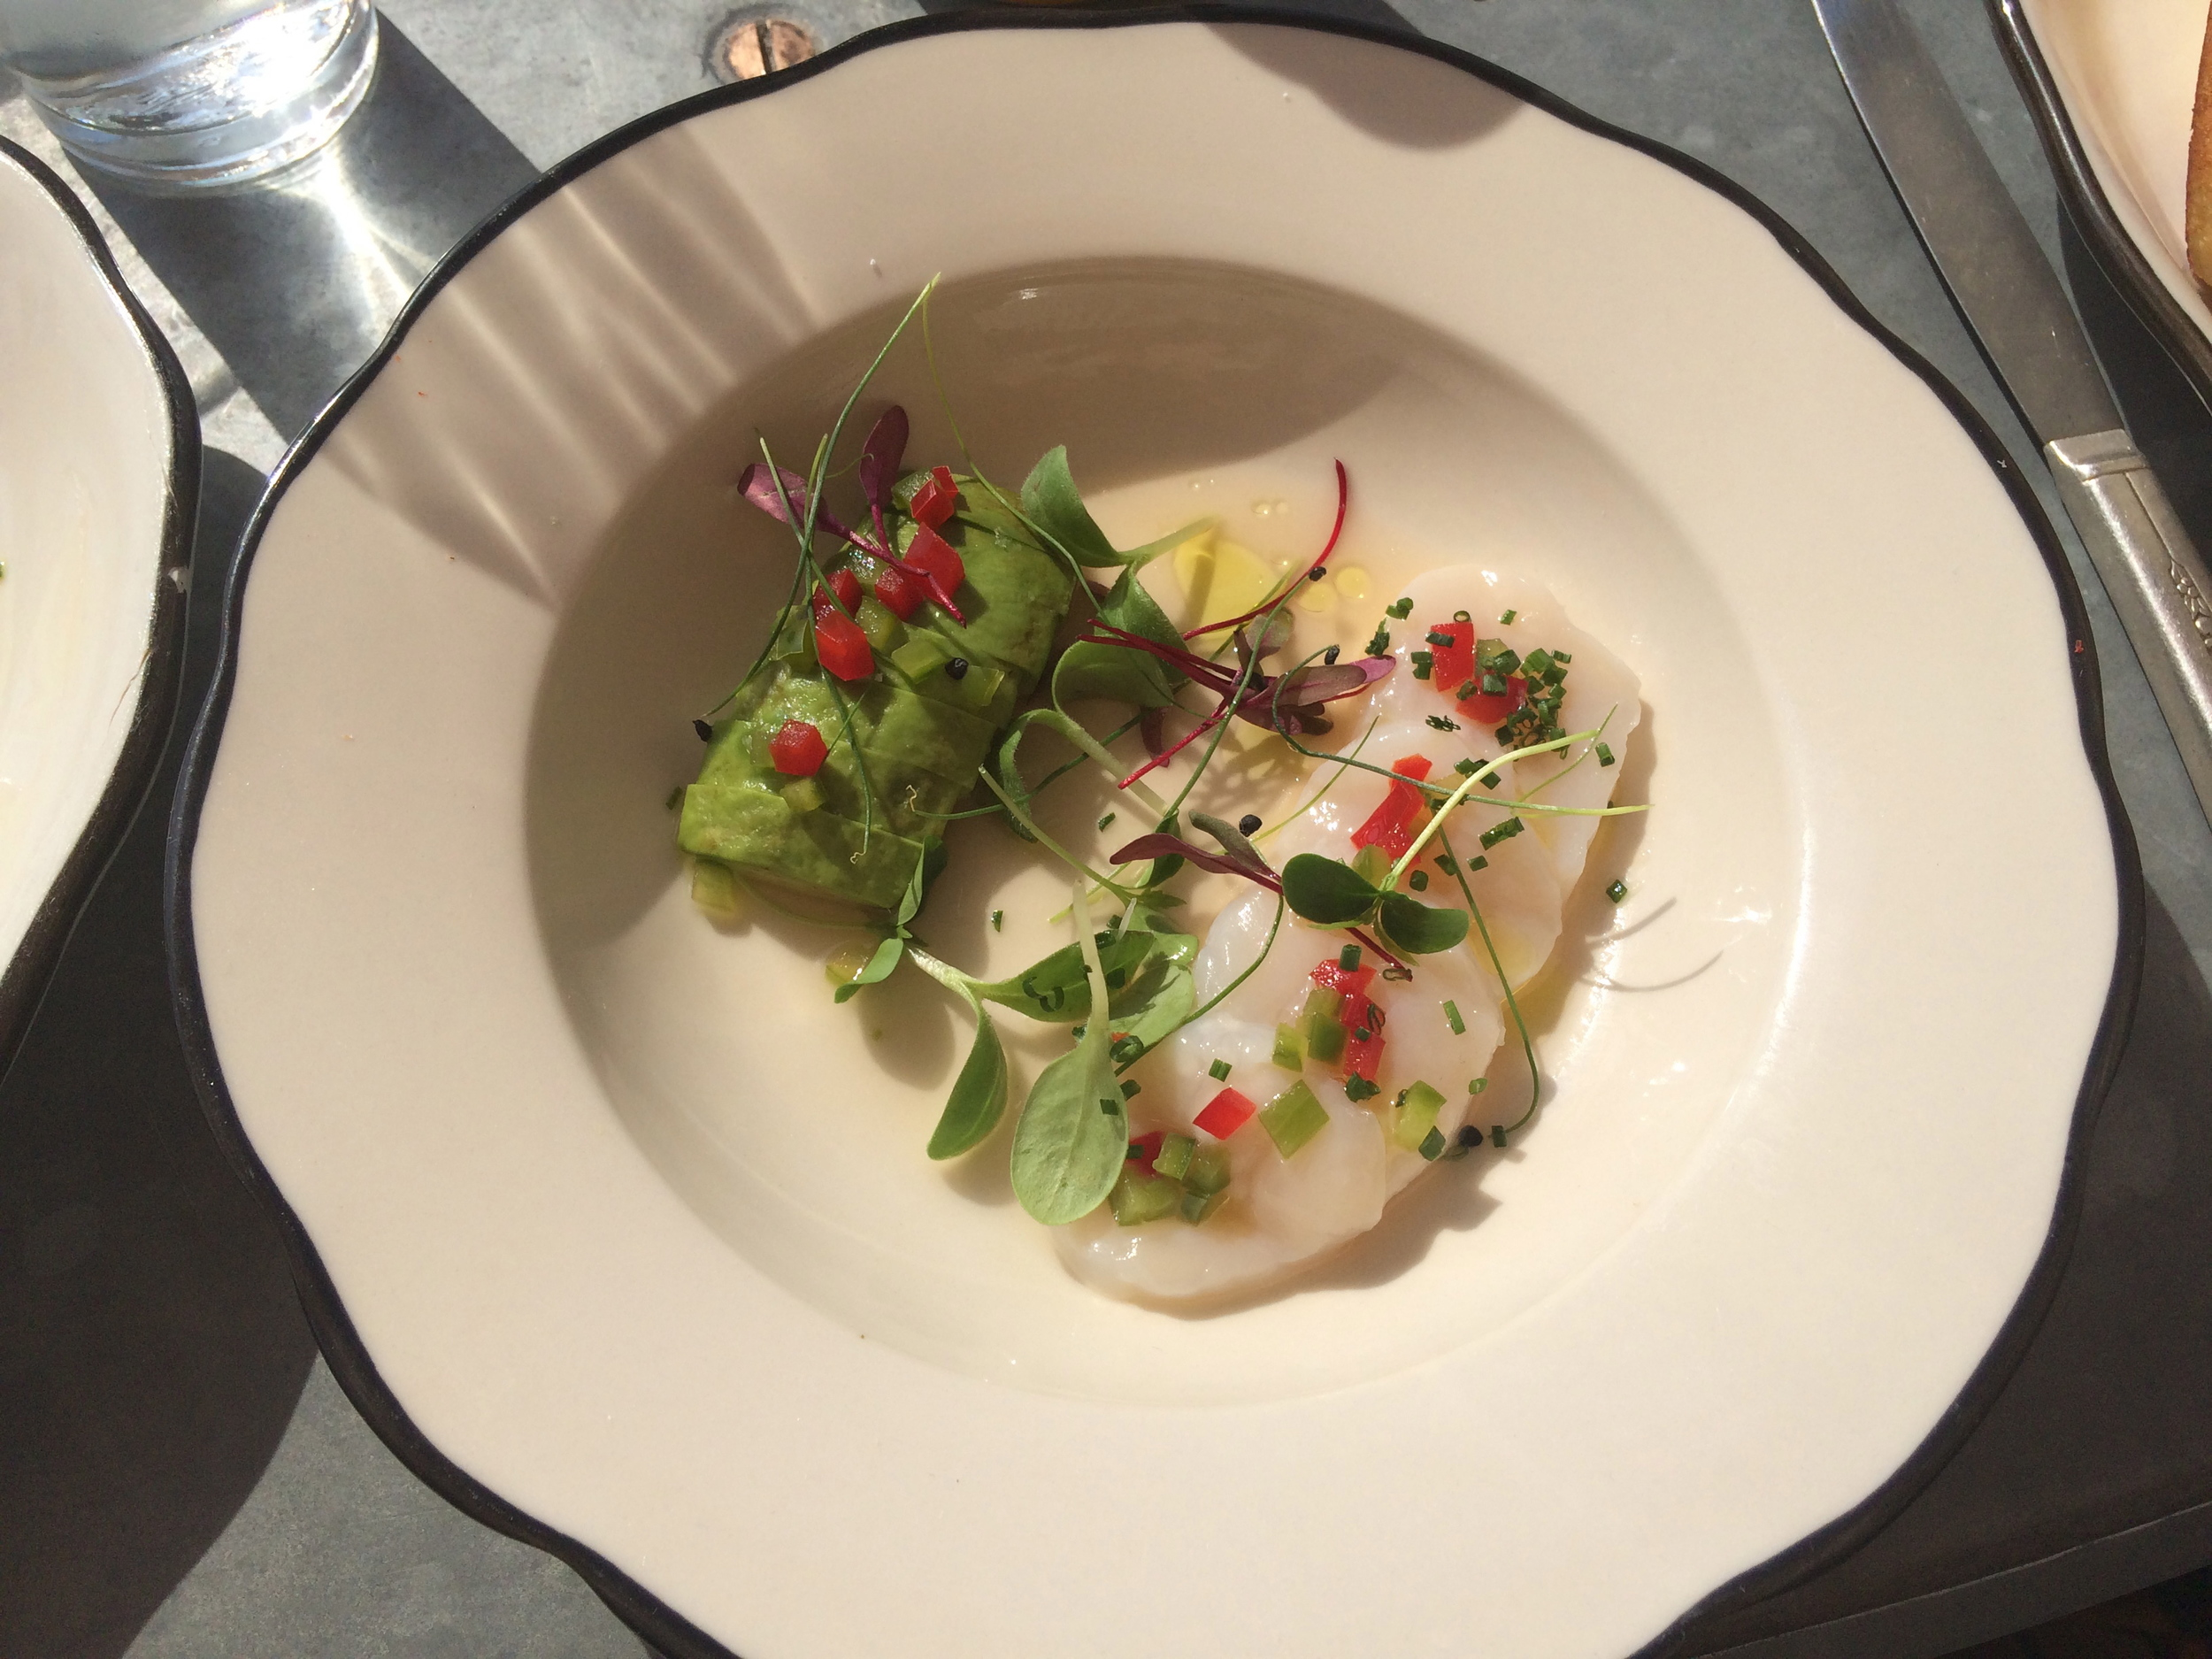 Scallop Ceviche with avocado and habanero is the perfect bright snack for a hot day.